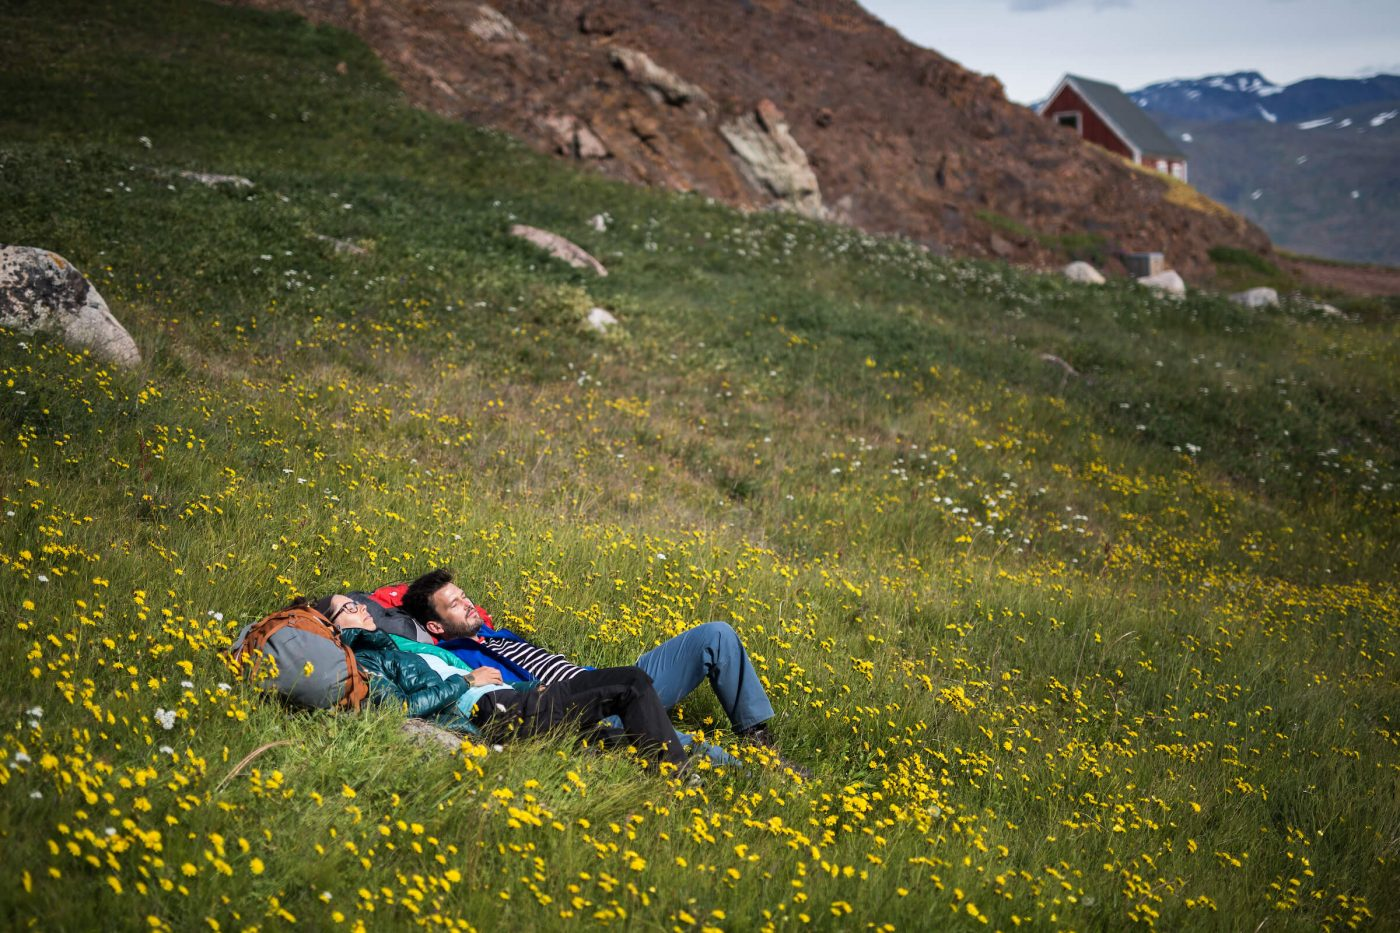 Hikers relaxing in a field of flowers in Qassiarsuk. The 5 most boring places in Greenland